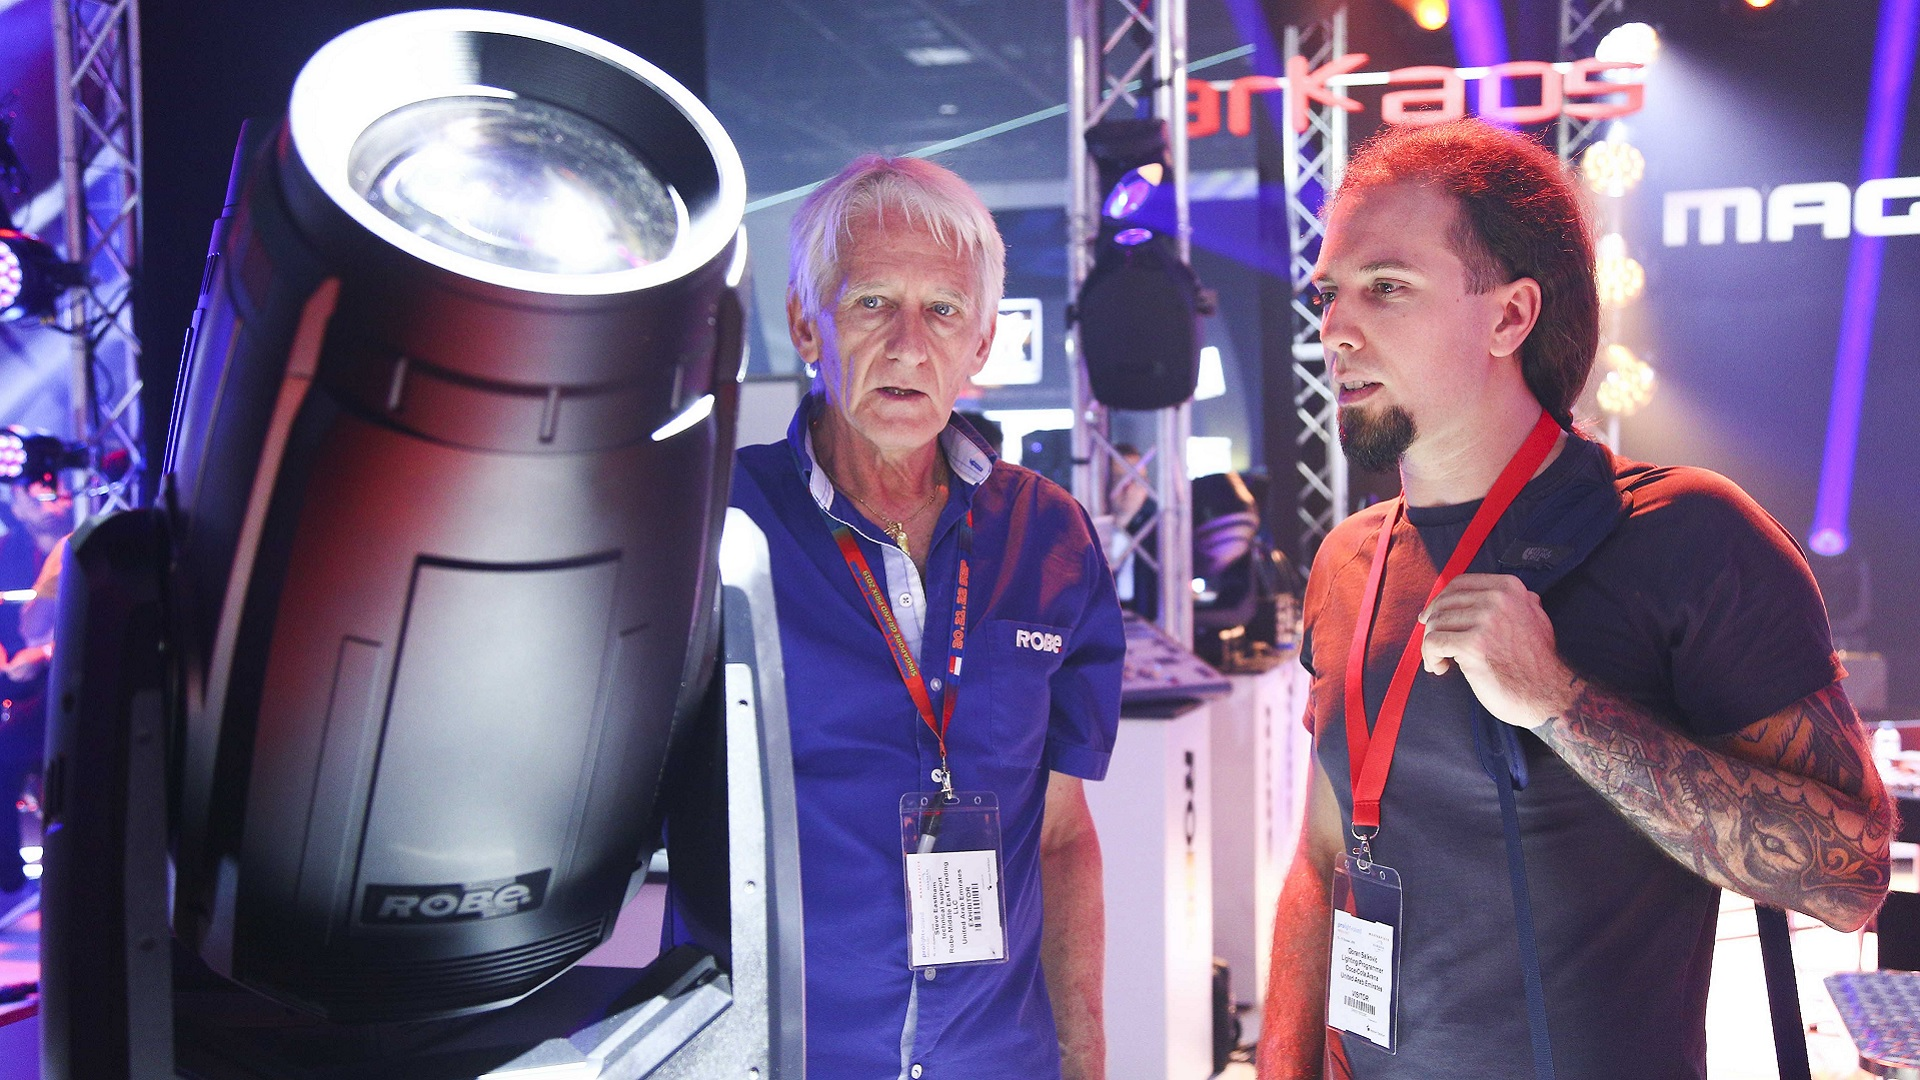 Prolight + Sound Middle East - Learn more about the show